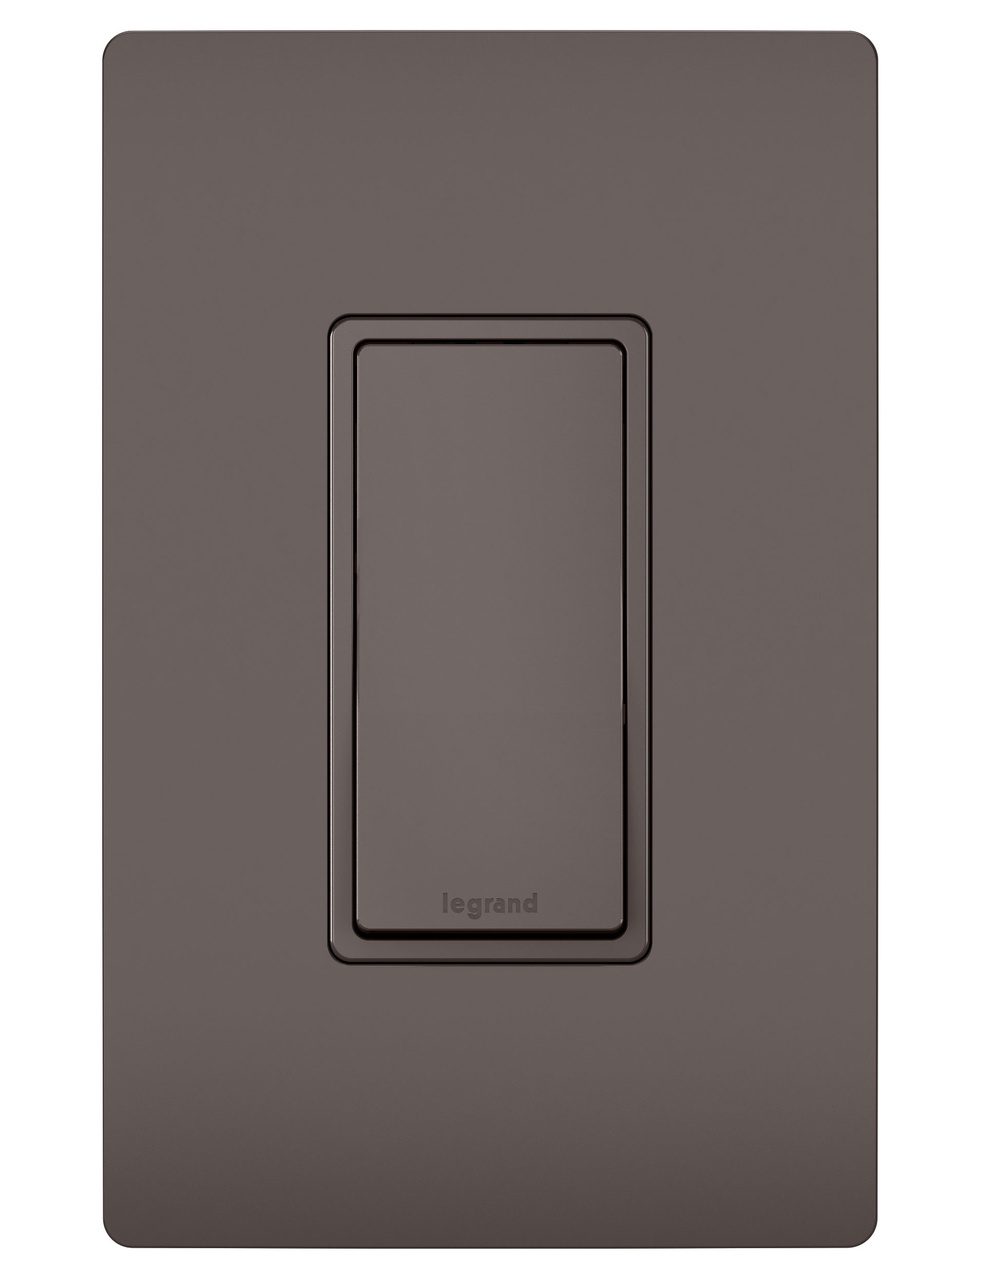 15A Single Pole Switch, Brown